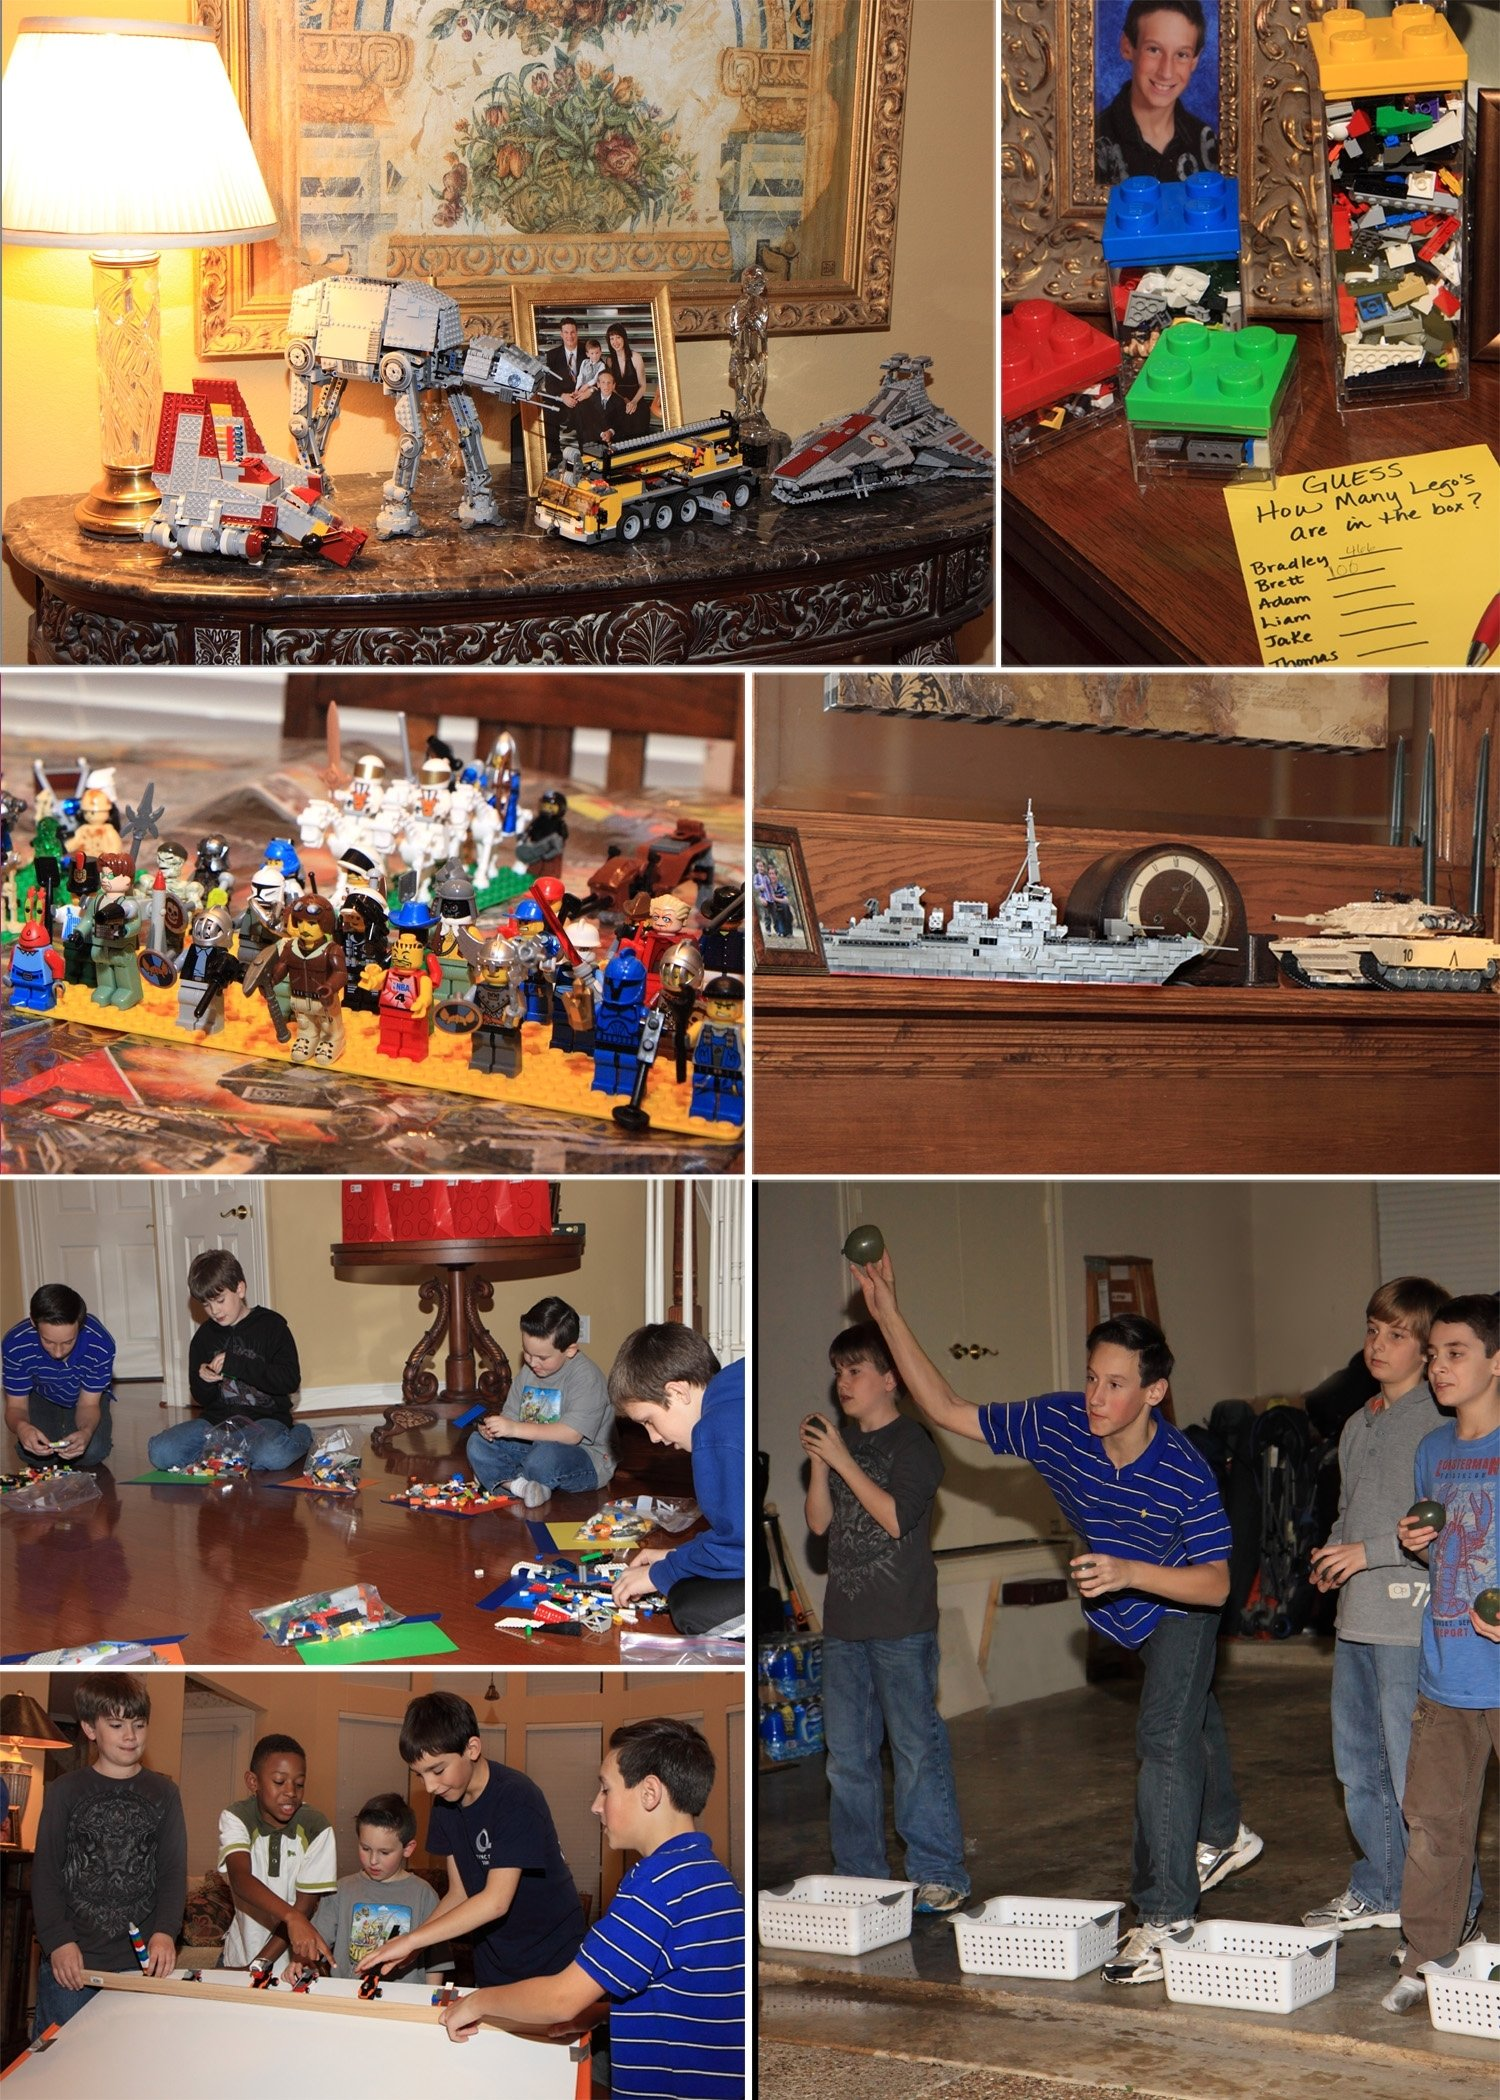 10 Lovely Ideas For 11 Year Old Birthday Party fancy idea 12 year old birthday party games ideas an 11 boy s lego 5 2020